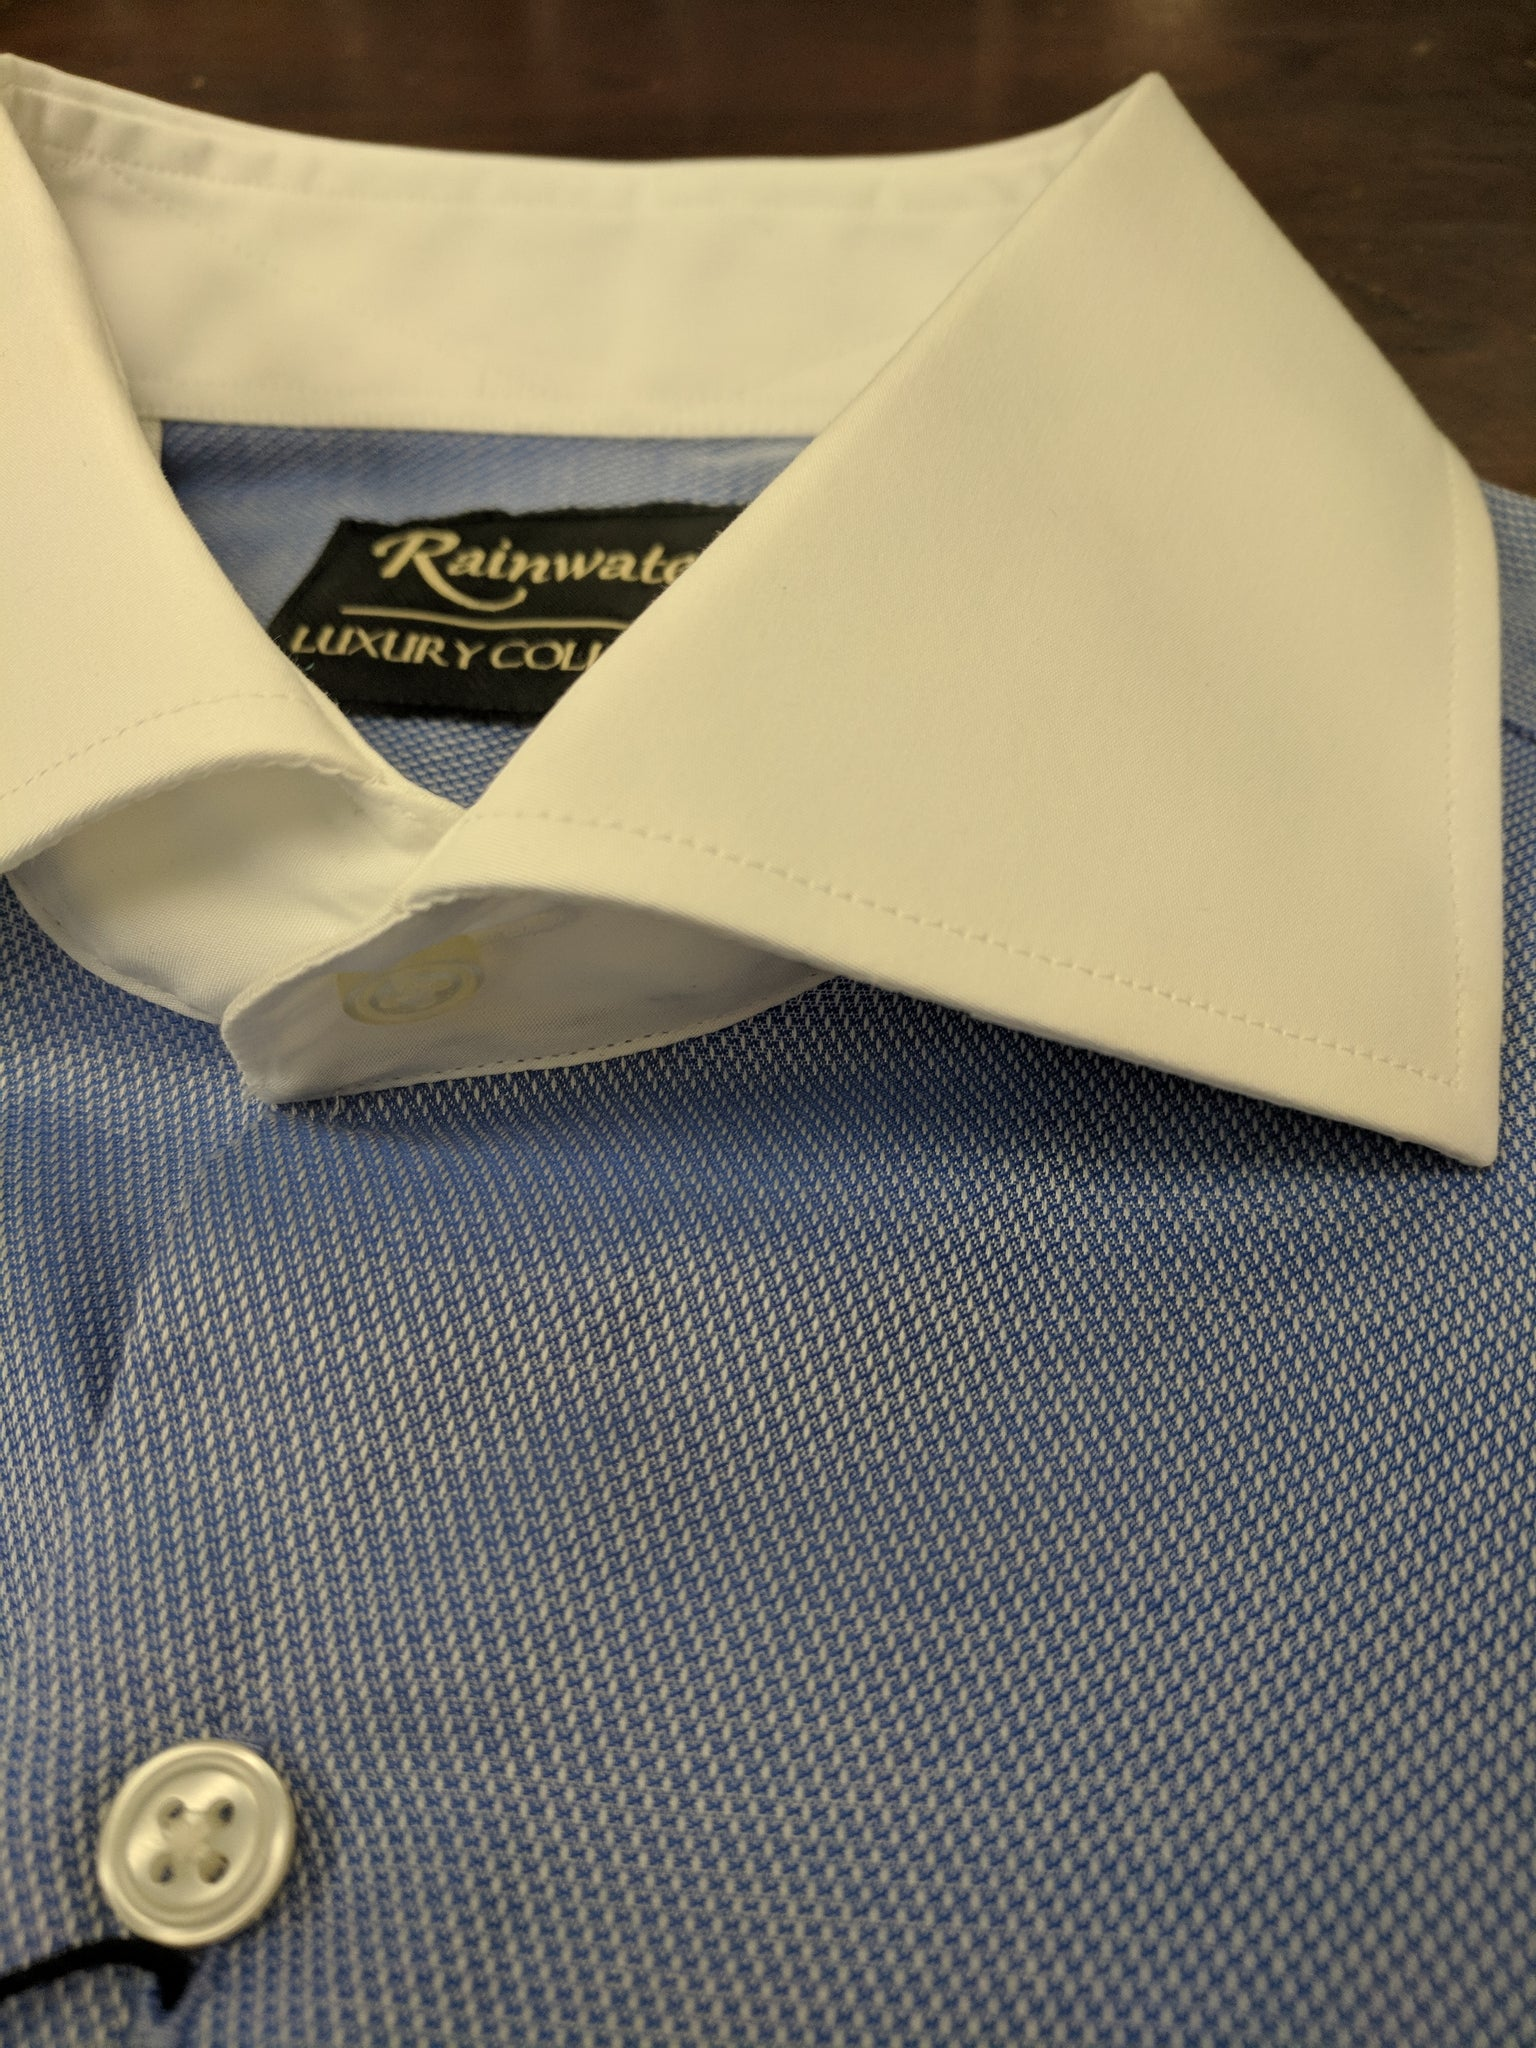 Rainwater's 100% Cotton Blue Royal Oxford Dress Shirt with Contrast Collar - Rainwater's Men's Clothing and Tuxedo Rental